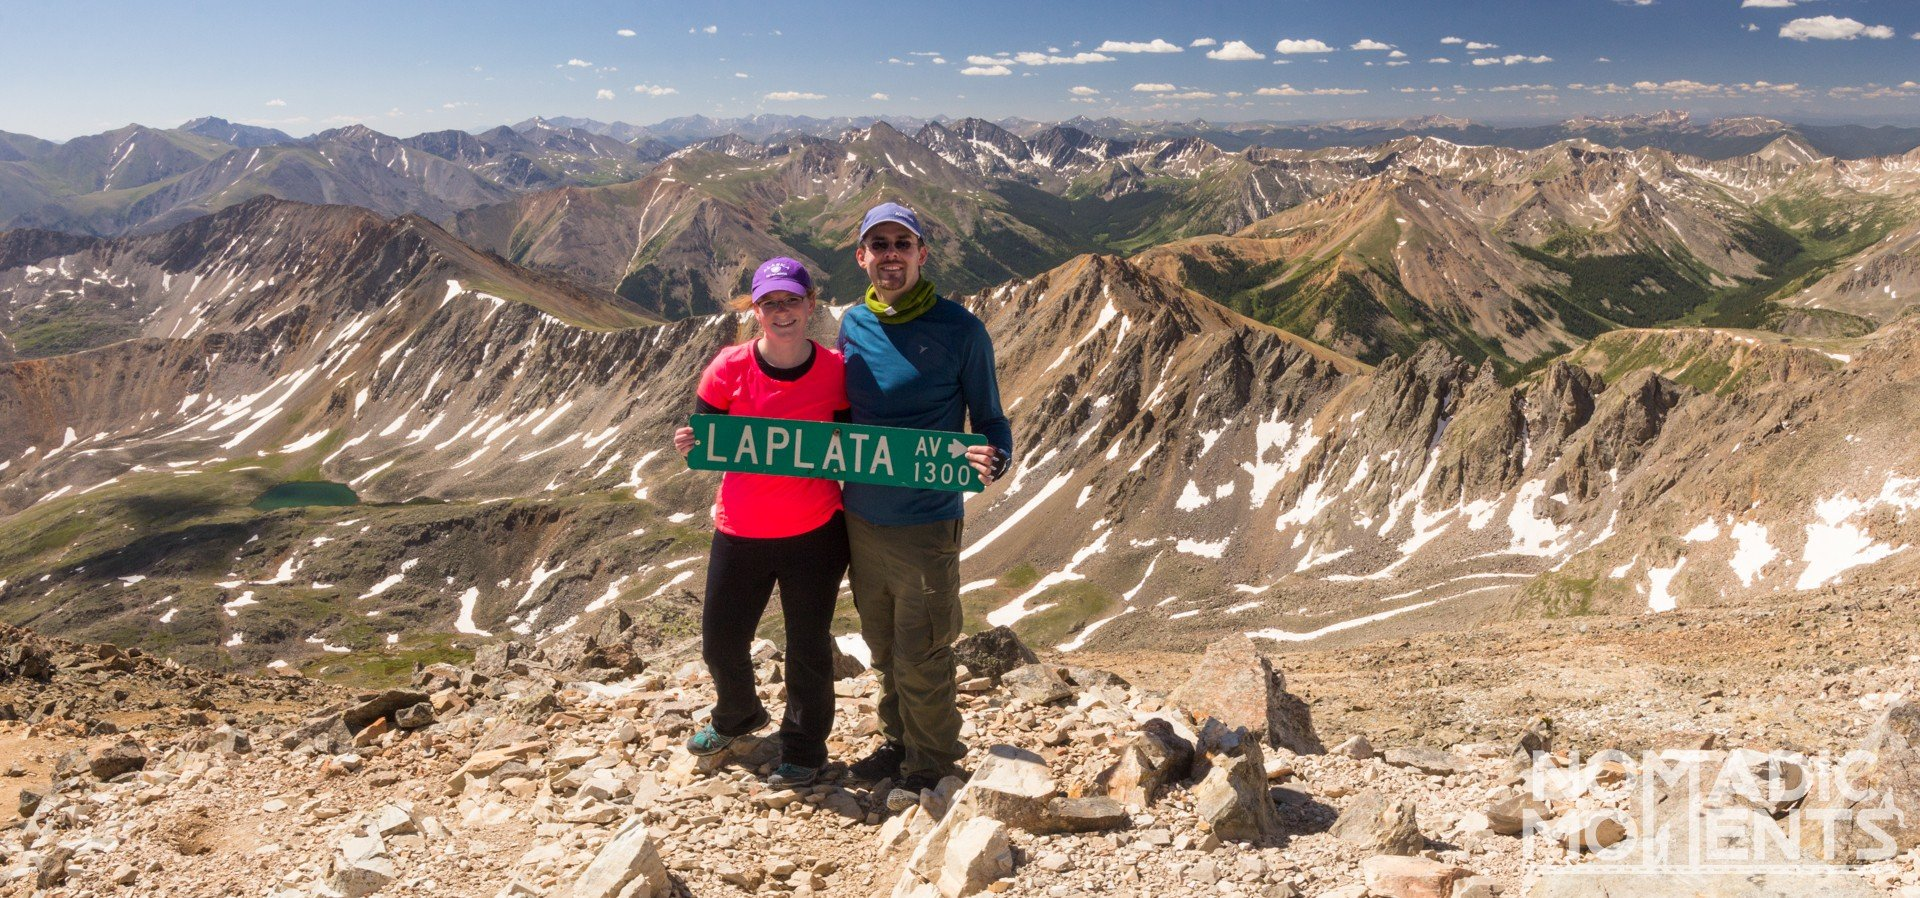 My Wife & I on top of La Plata Peak in Colorado, Moments Beyond